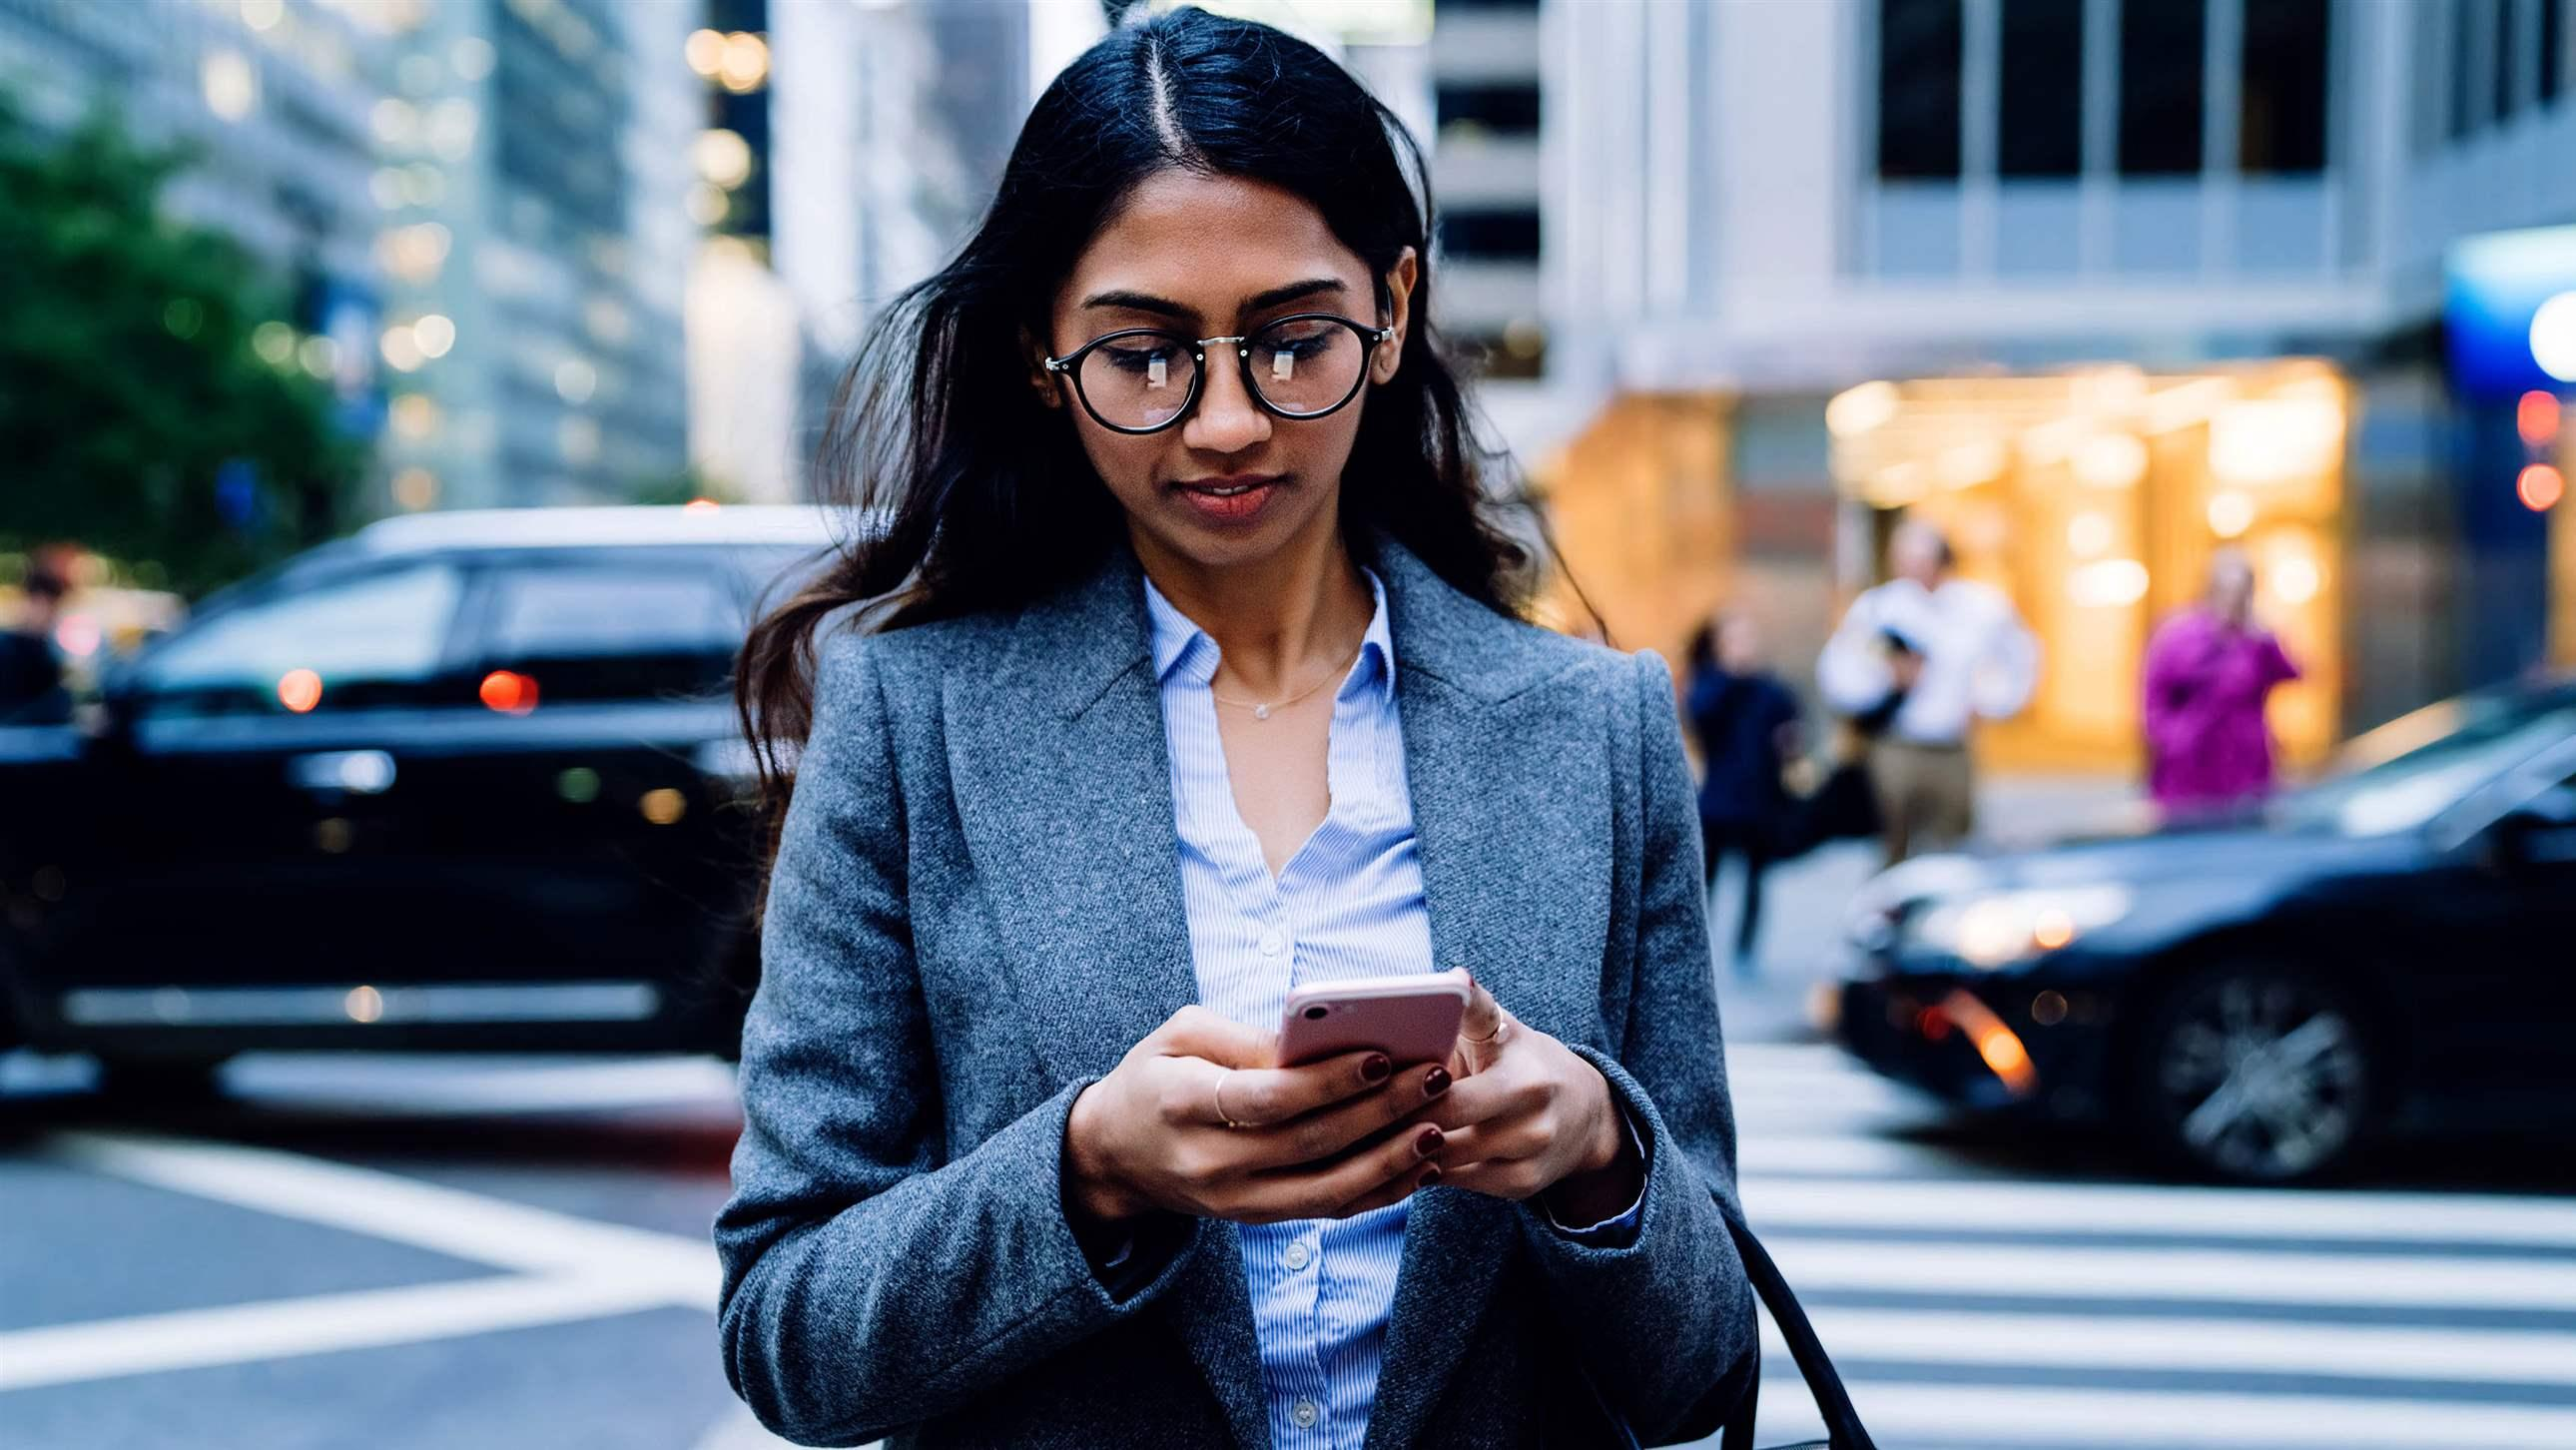 Asian business woman in glasses and gray jacket browsing in mobile phone while crossing road in New York City